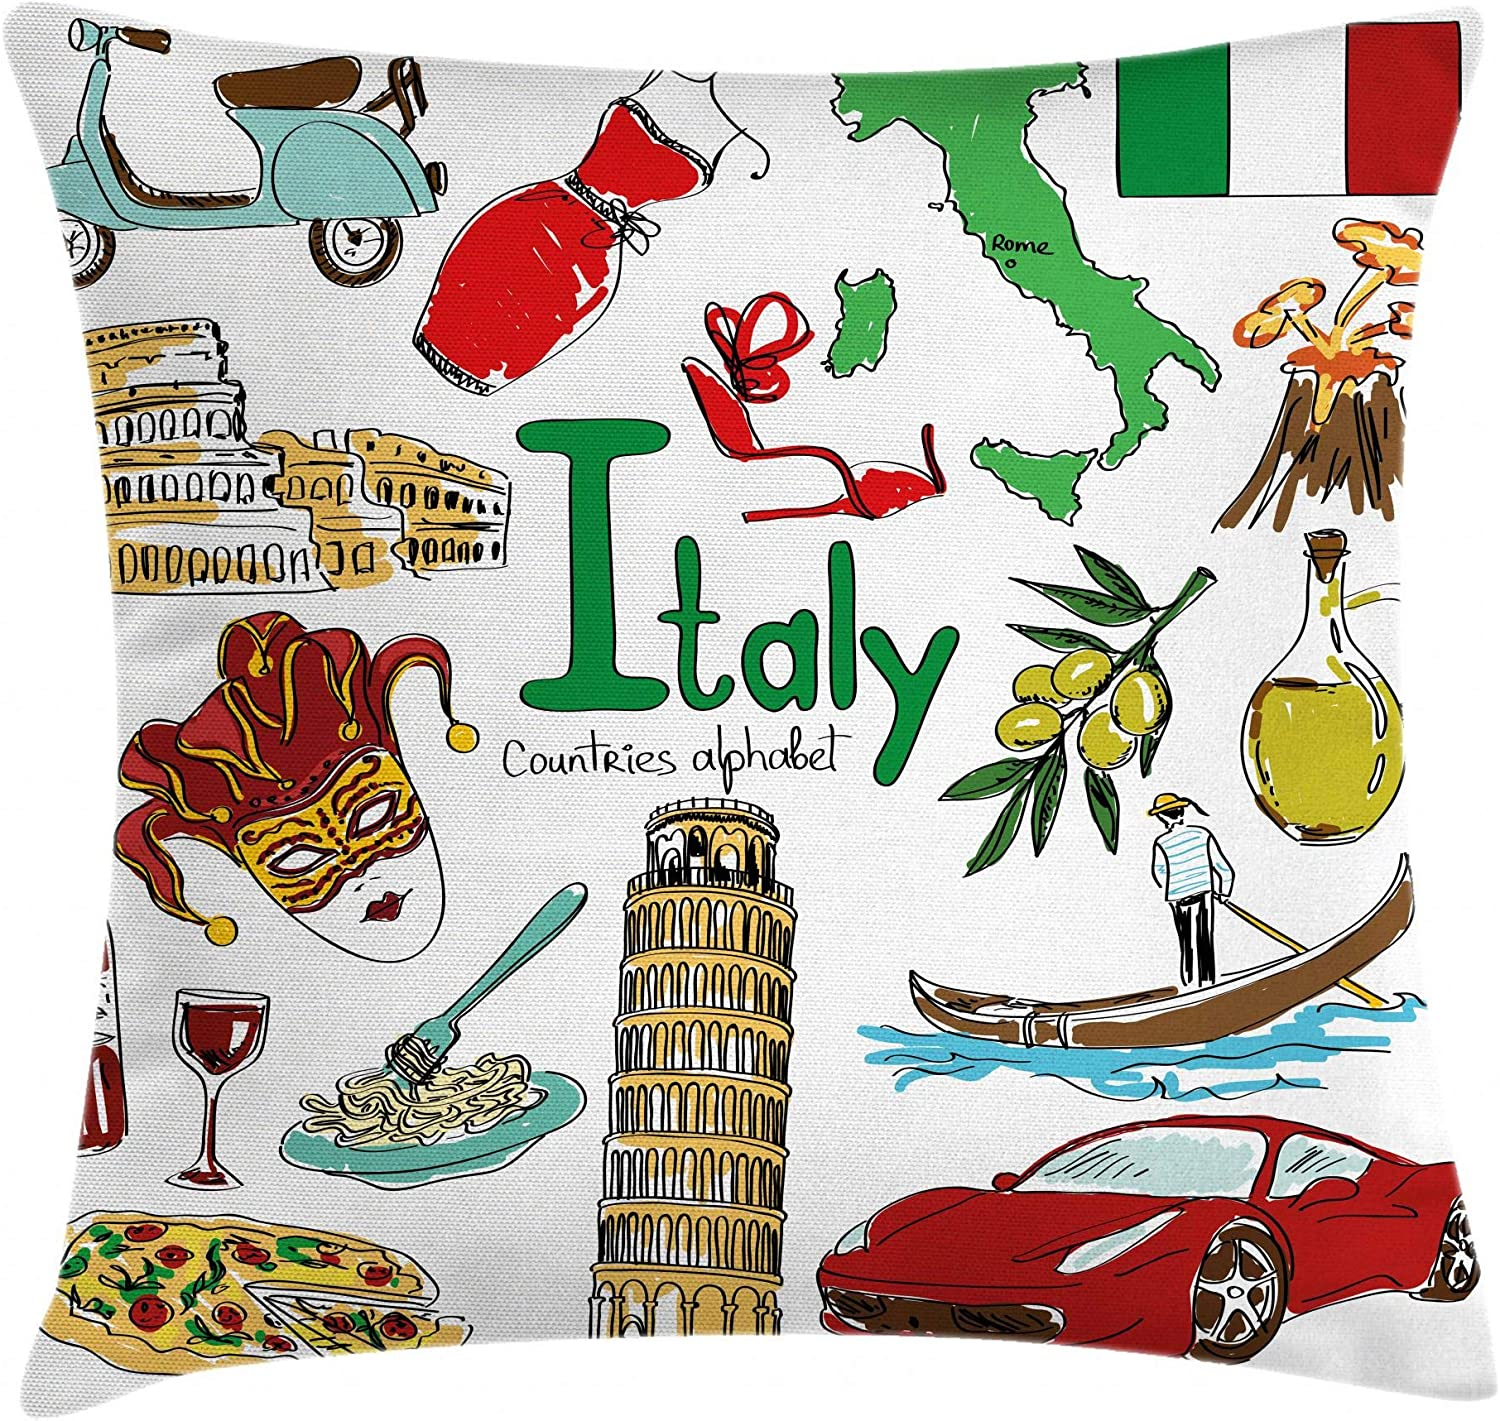 Ambesonne Italy Throw Pillow Cushion Cover, Fun Colorful Sketch Artwork Italy Countries Alphabet Landmarks Food Culture, Decorative Square Accent Pillow Case, 18